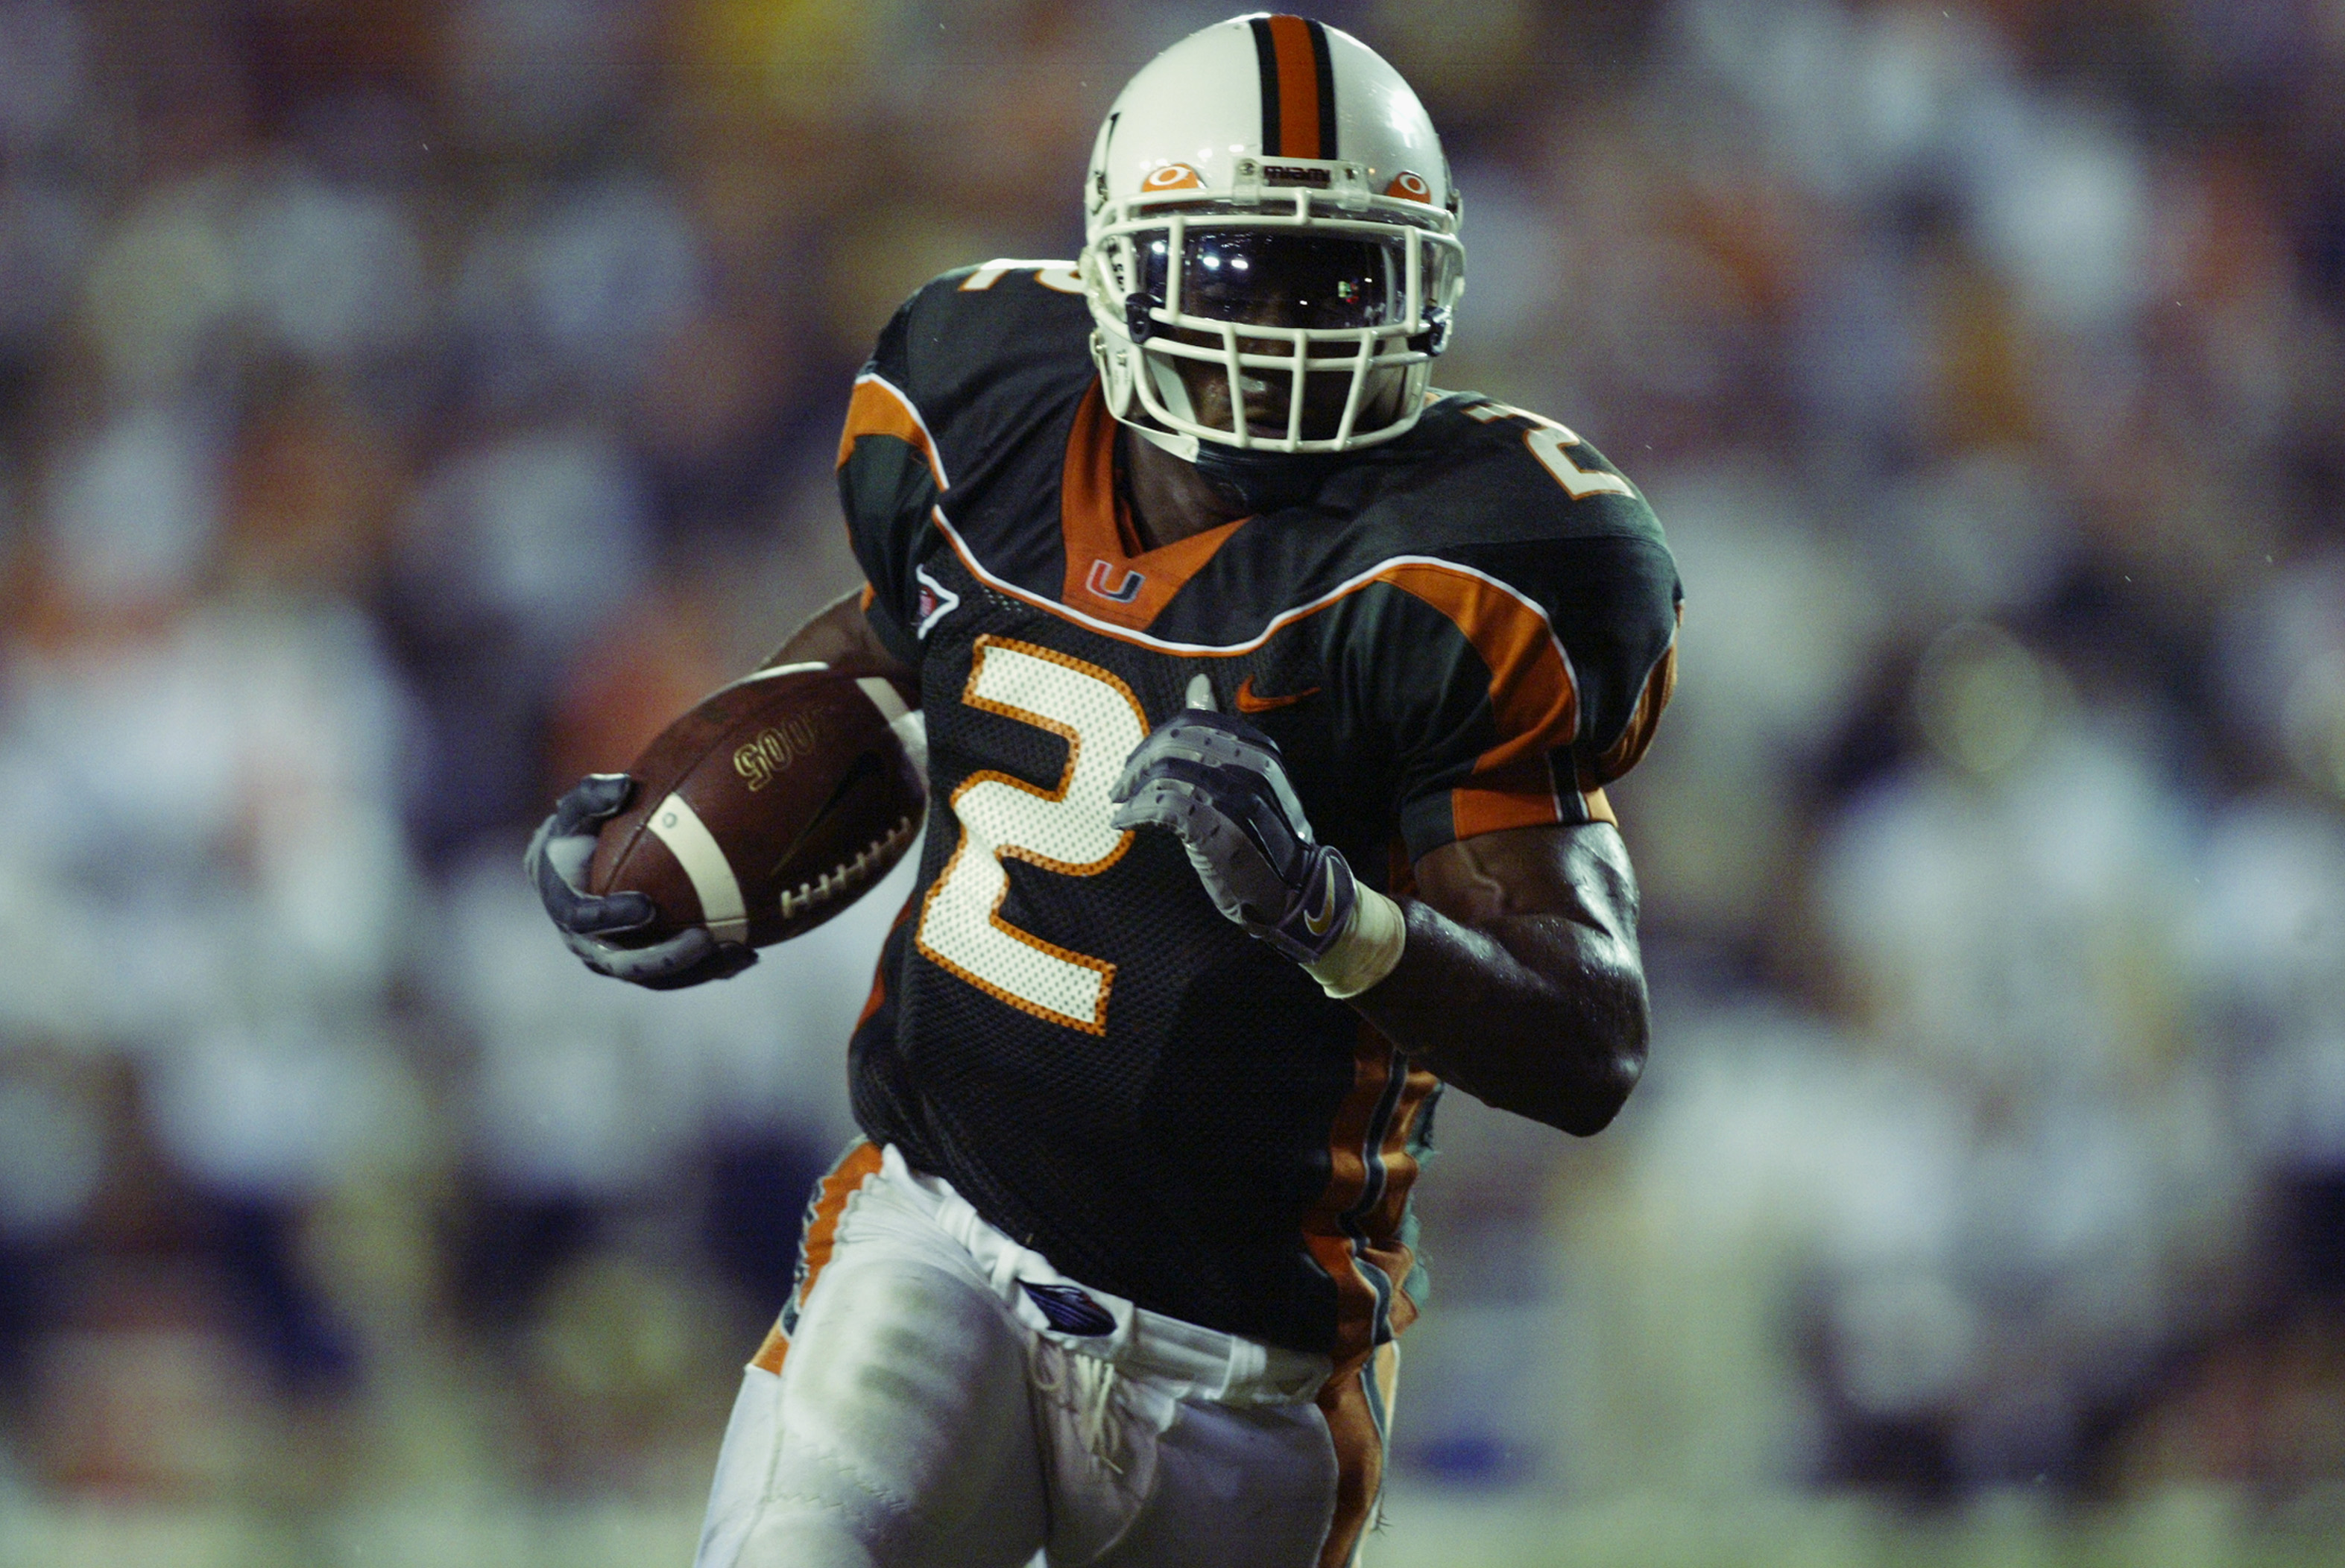 MIAMI, FL - NOVEMBER 21:  Running back Willis McGahee #2  of the University of Miami runs the ball against the University of Pittsburgh during the game at the Orange Bowl on November 21, 2002 in Miami, Florida.  (Photo by Andy Lyons/Getty Images)